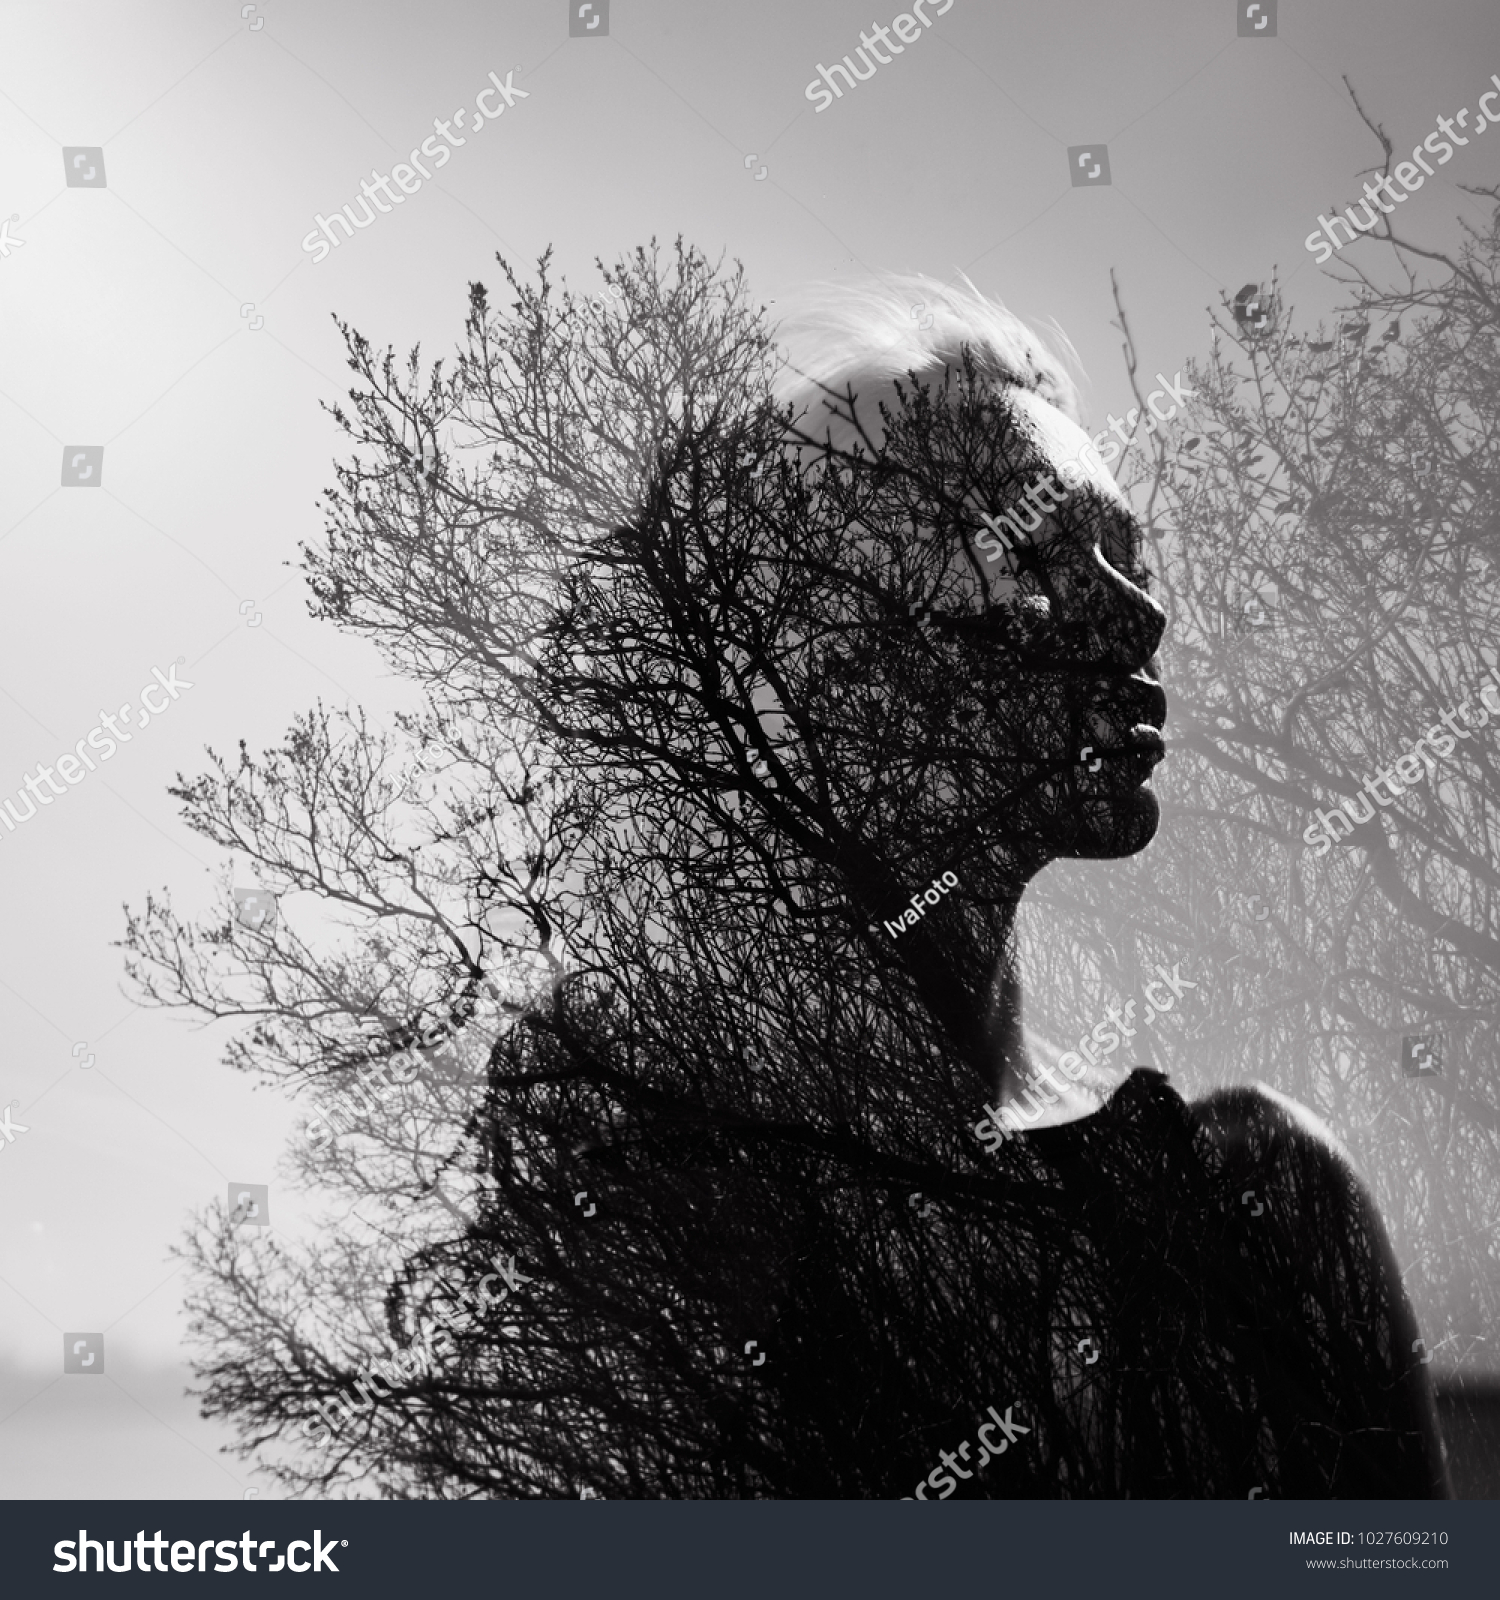 Black and white portrait of a girl with a double exposure on a background of tree